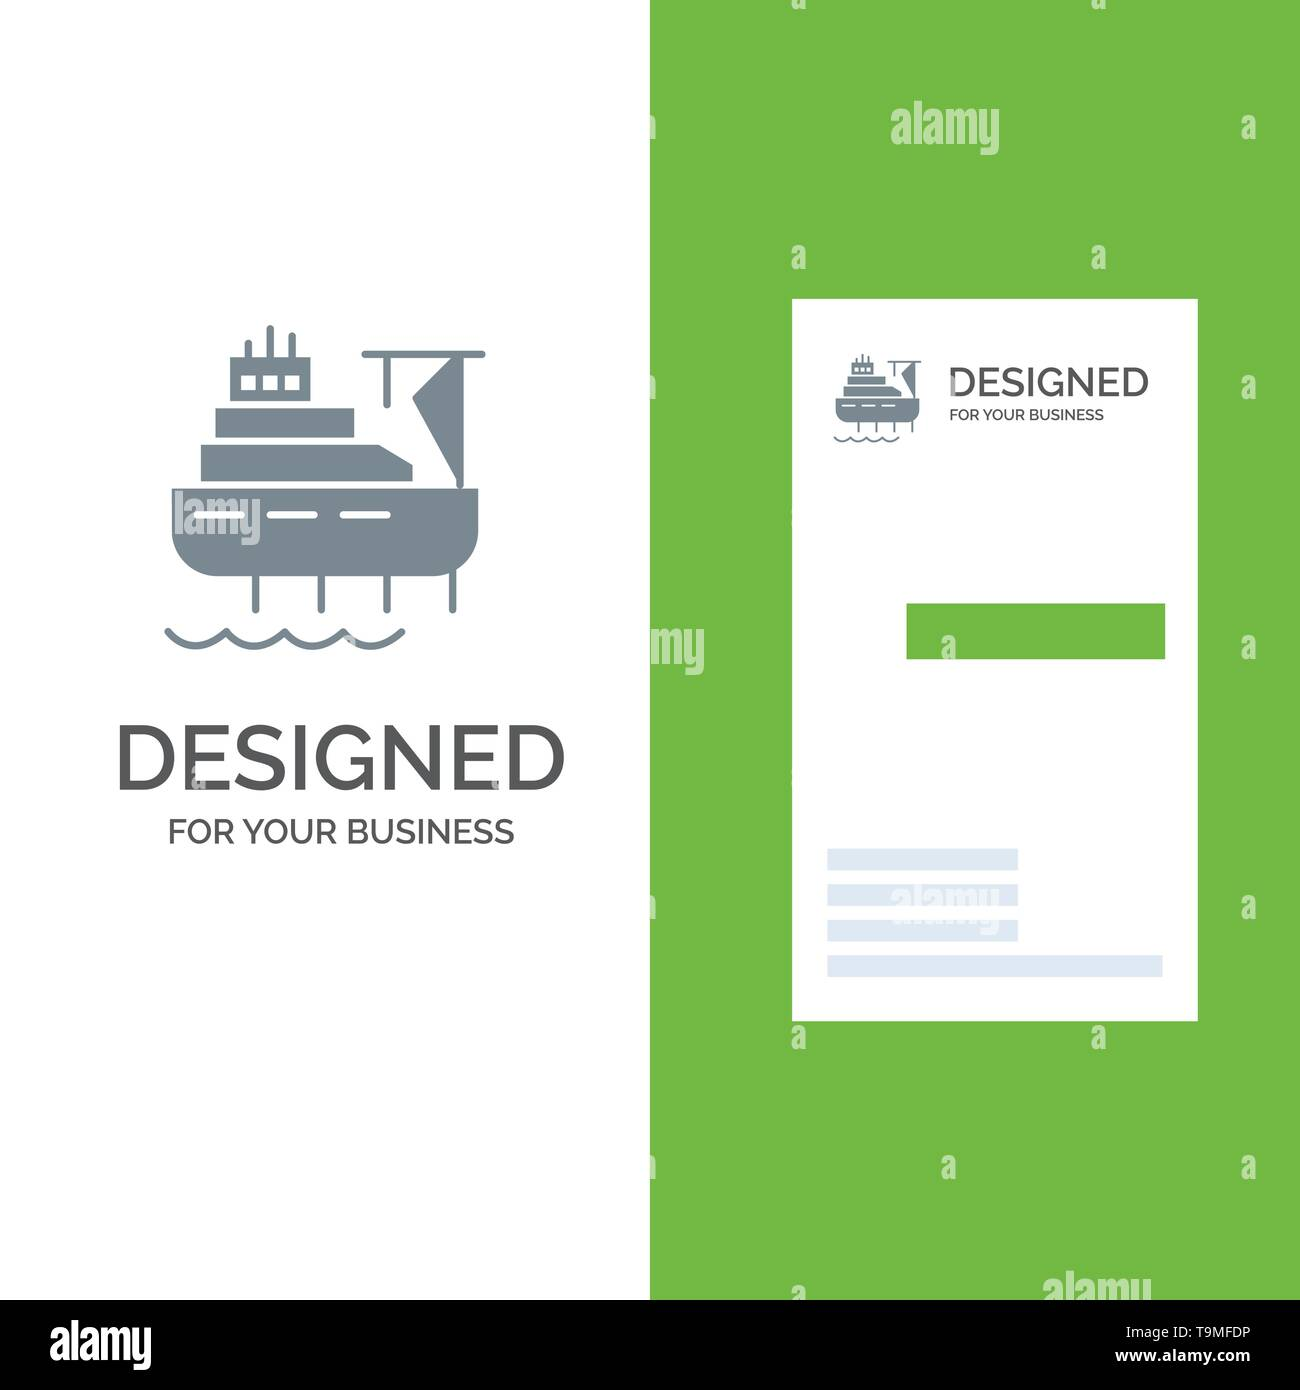 Ship, Boat, Cargo, Construction Grey Logo Design and Business Card Template - Stock Image